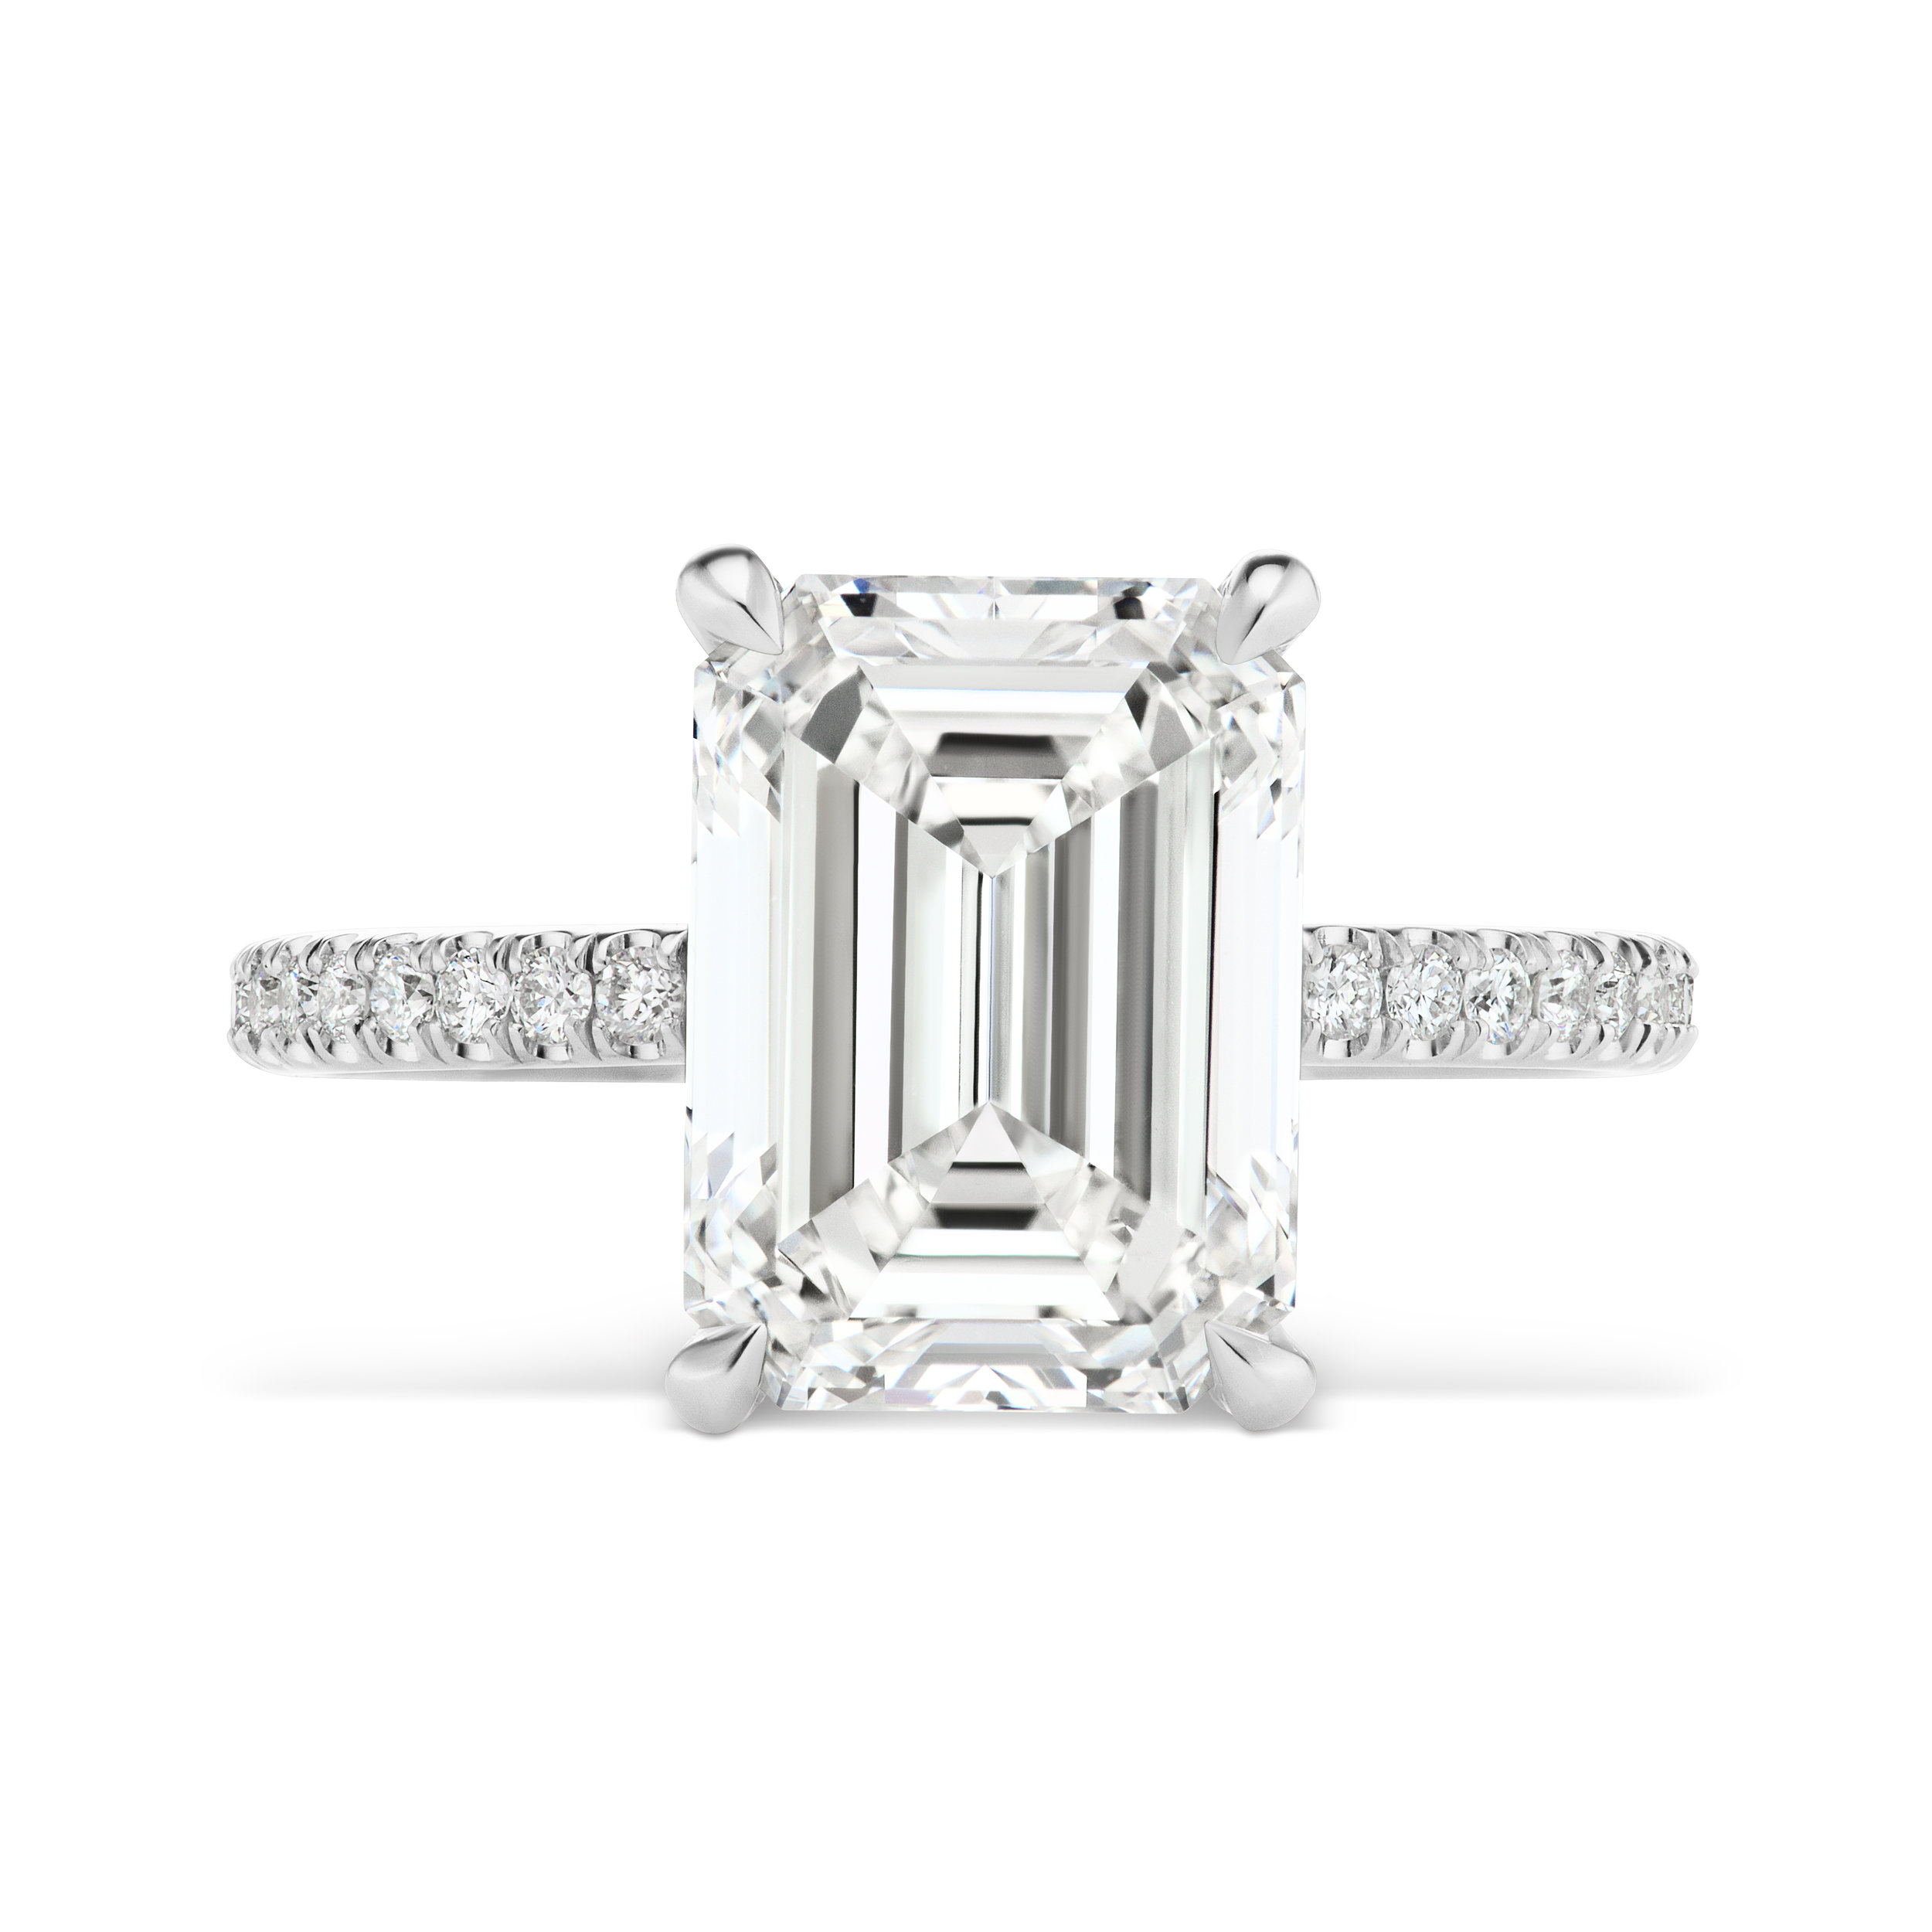 Emerald cut diamond ring with micropavé diamond band, mounted in platinum.